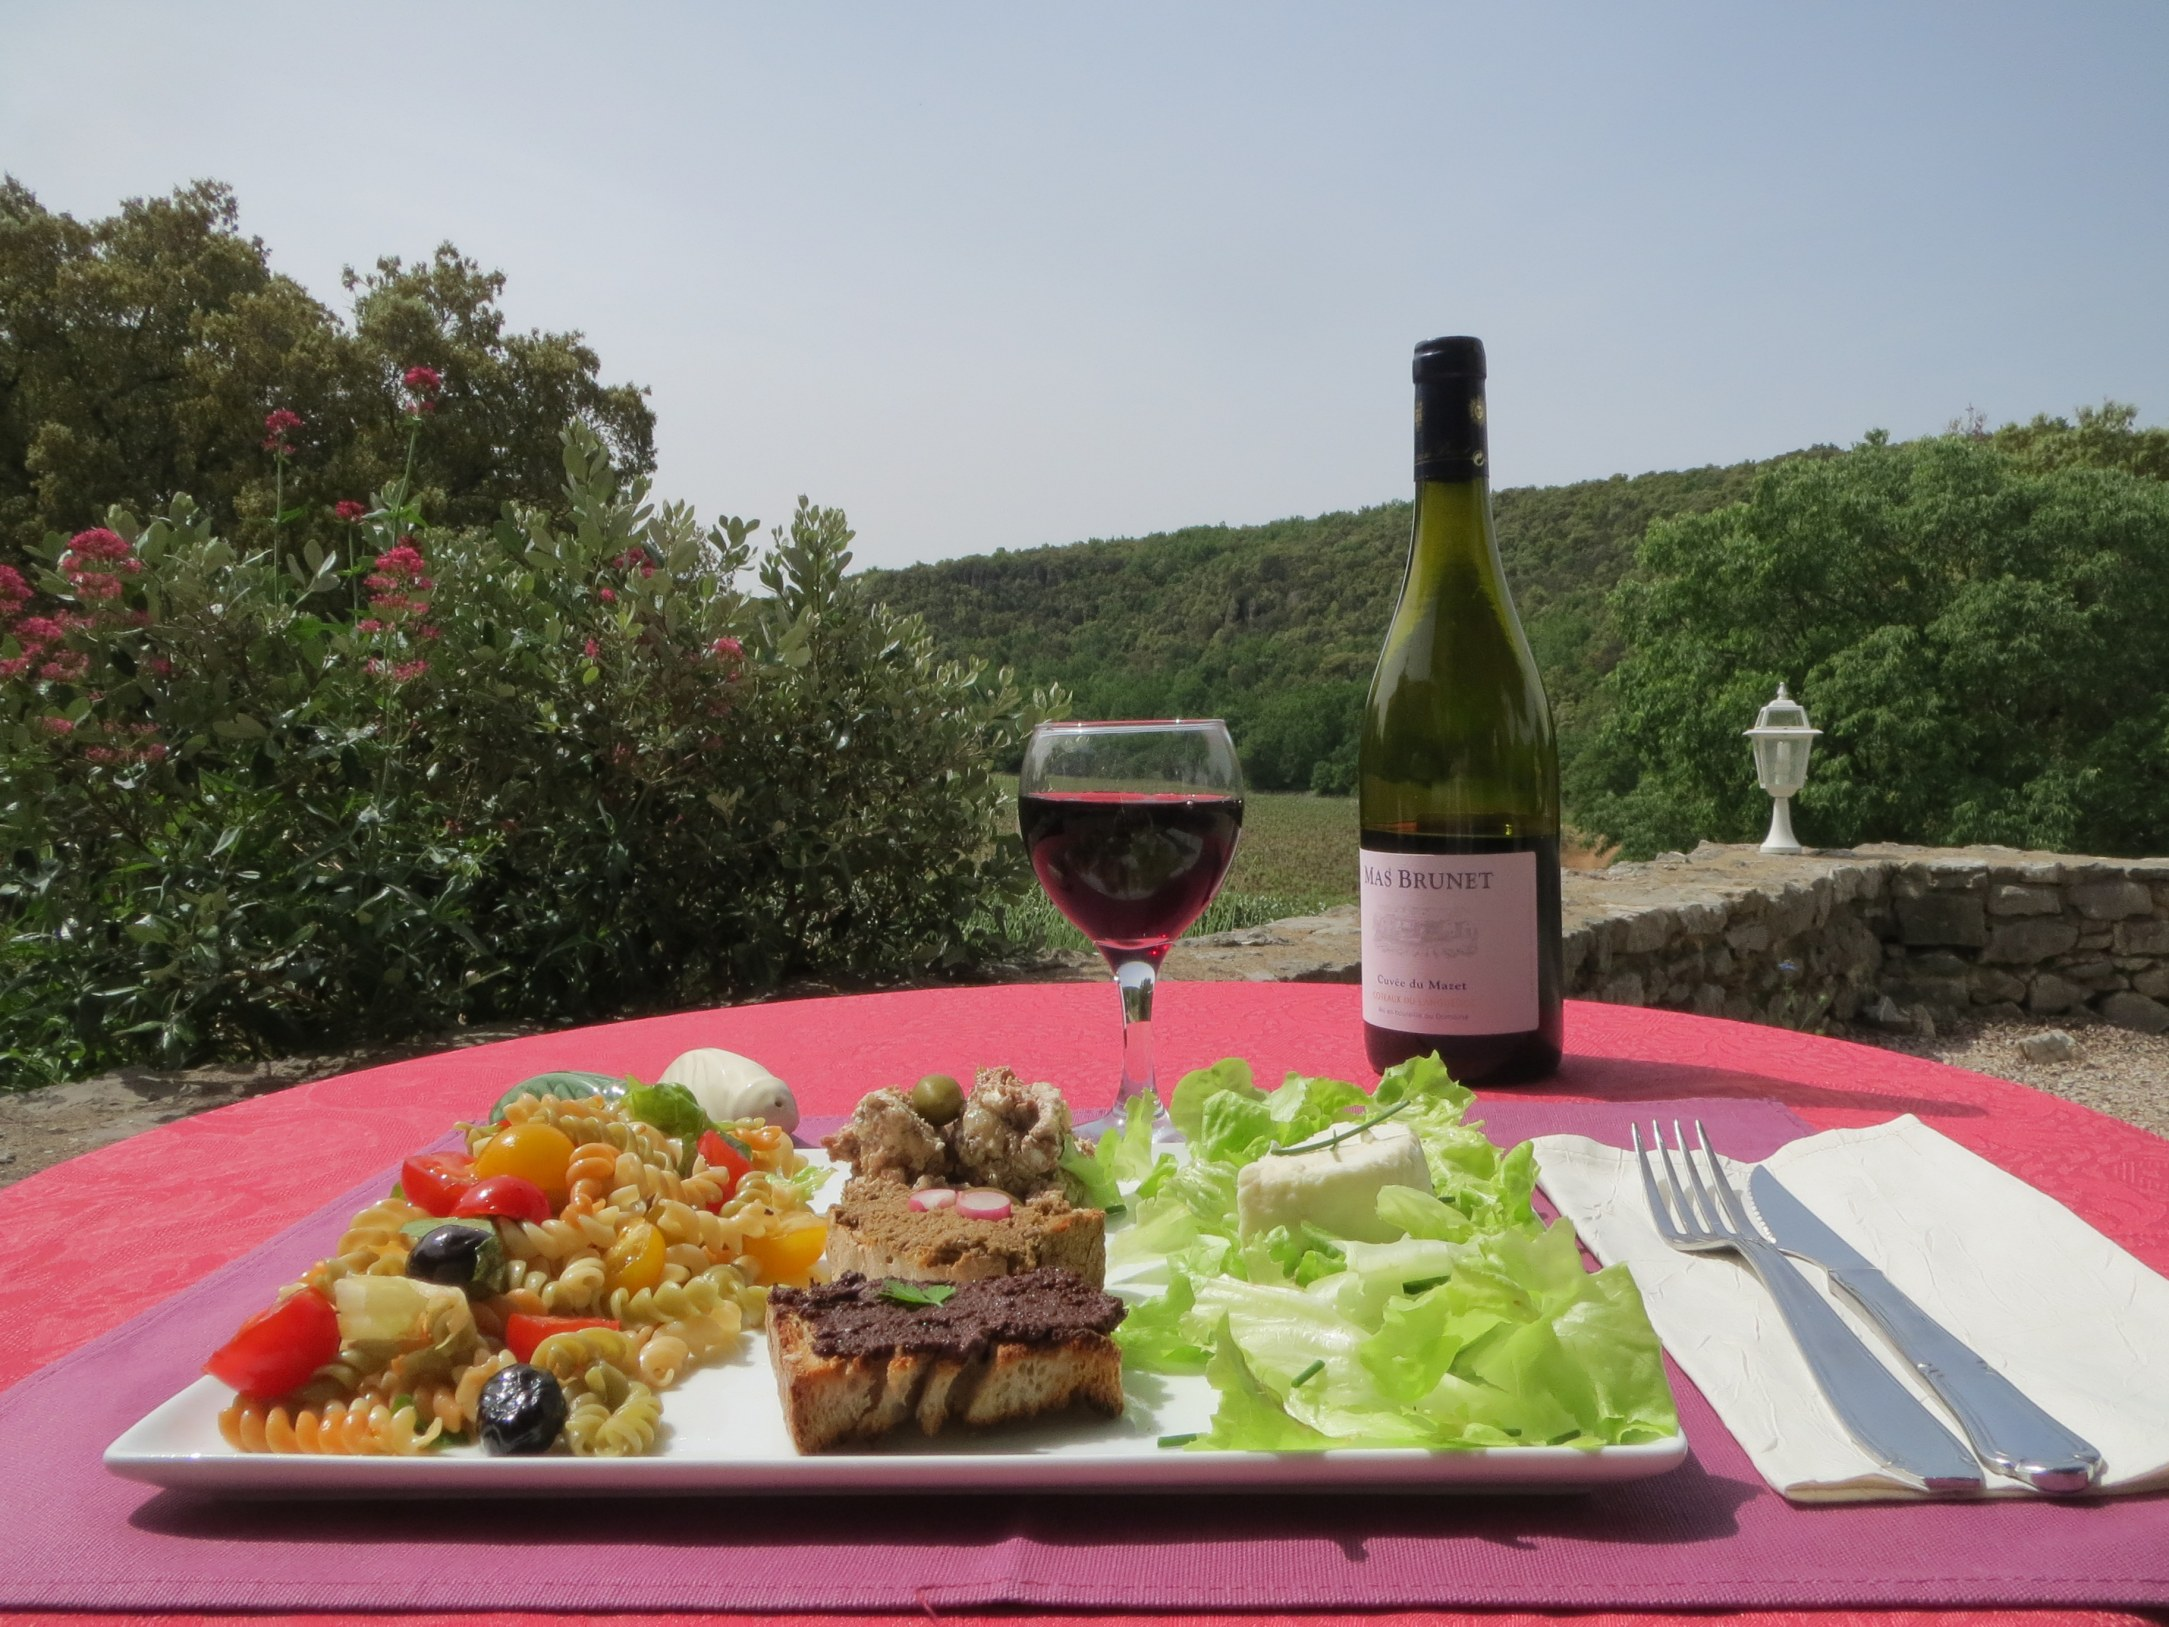 Cold meat, salad and wine